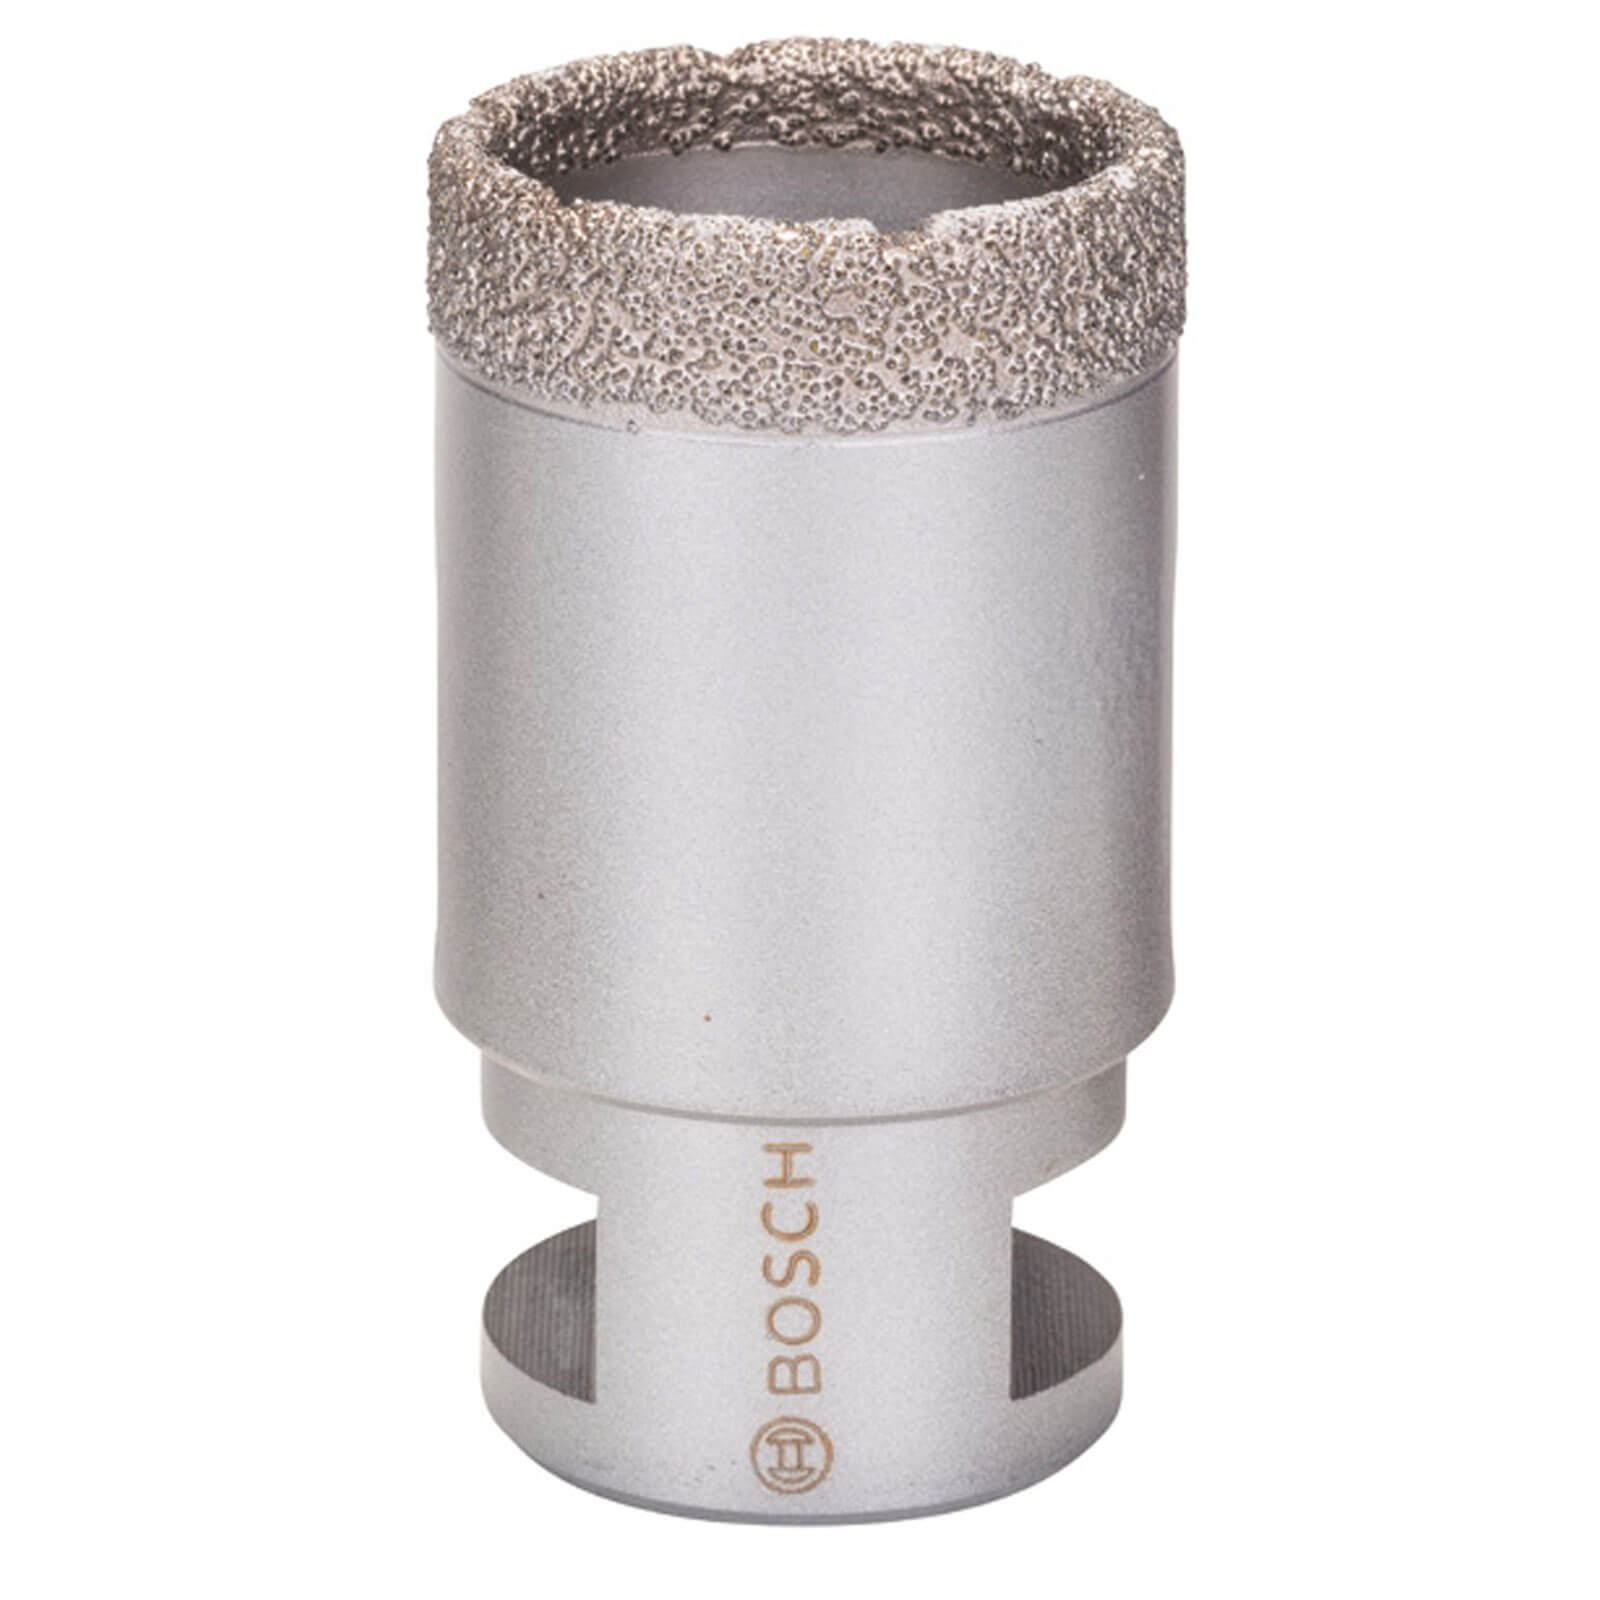 Bosch Angle Grinder Dry Diamond Hole Cutter For Ceramics 35mm